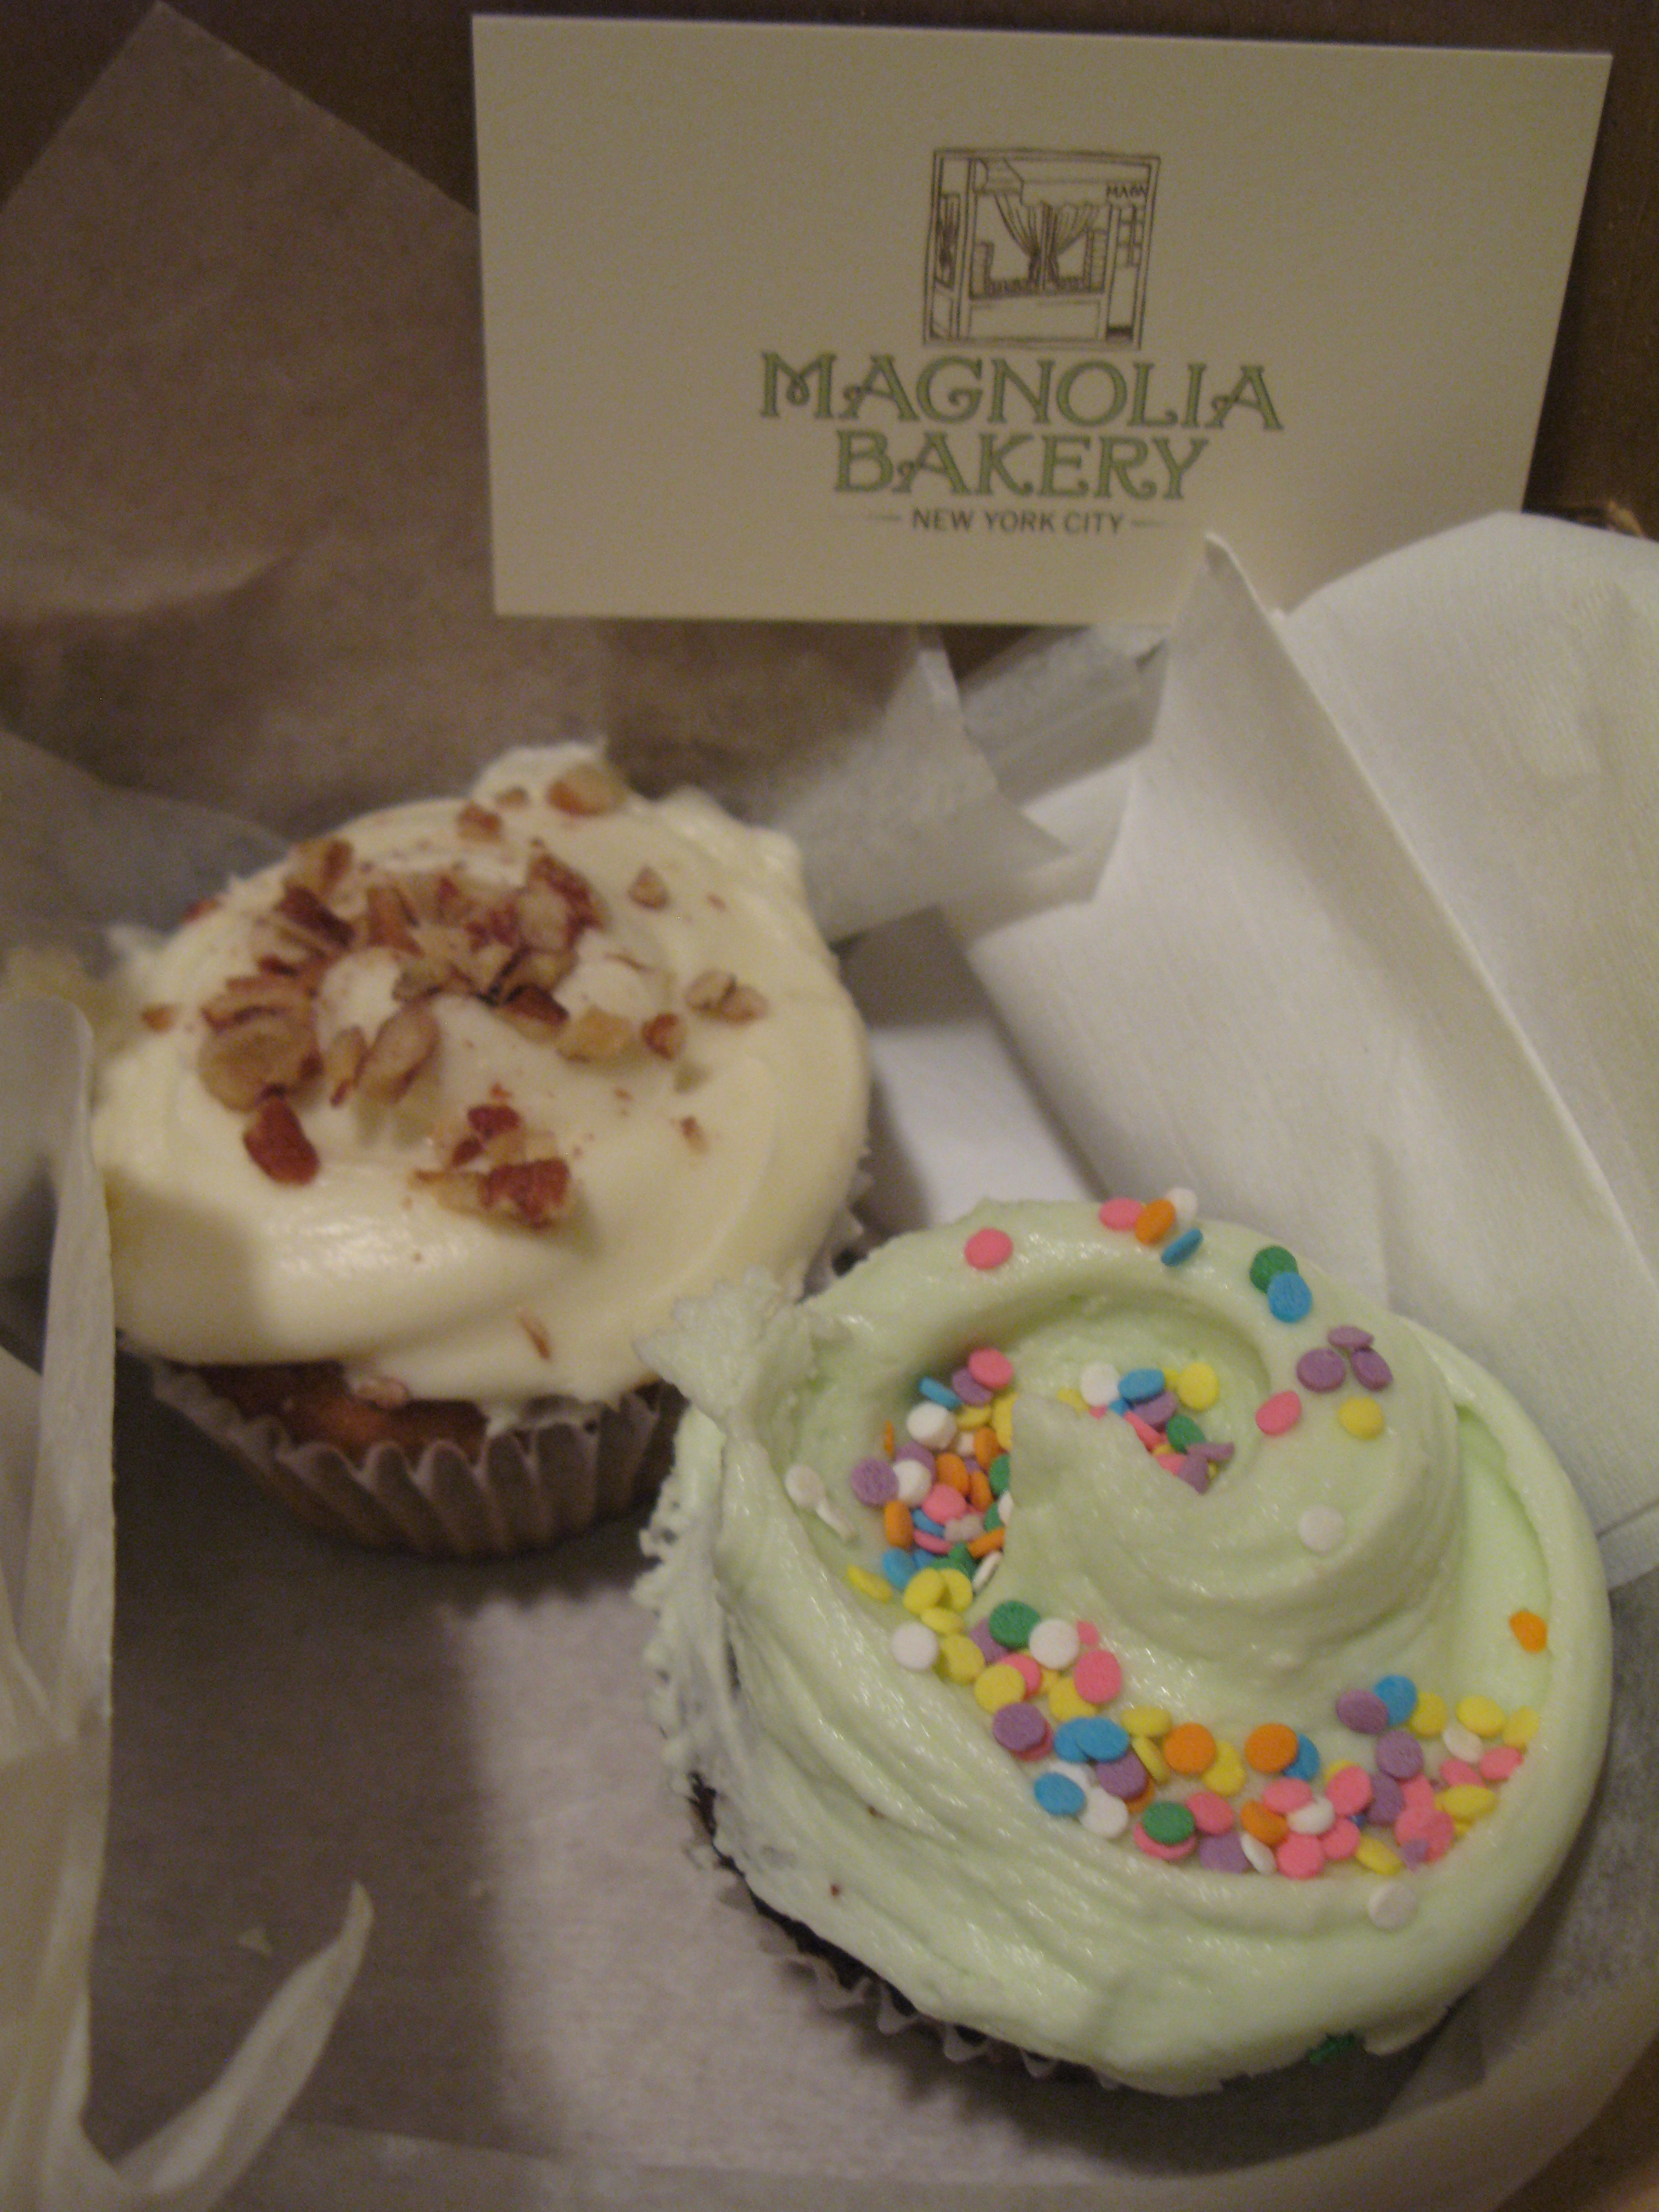 Magnolia Bakery cupcakes